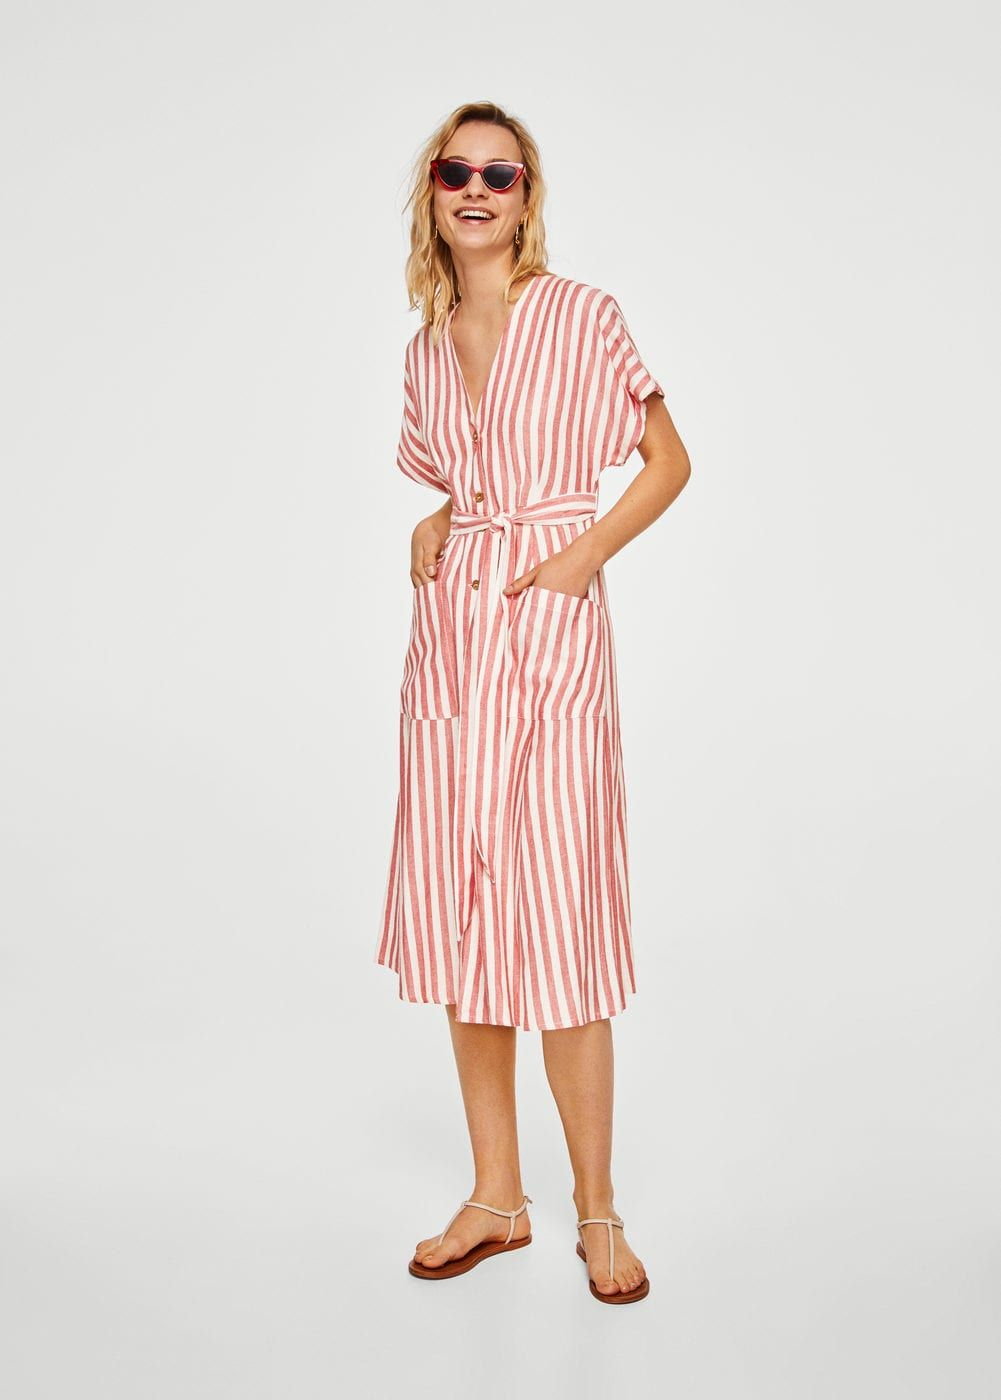 Striped cotton dress - Women in 2019   Fashions   Pinterest ... 21769825be